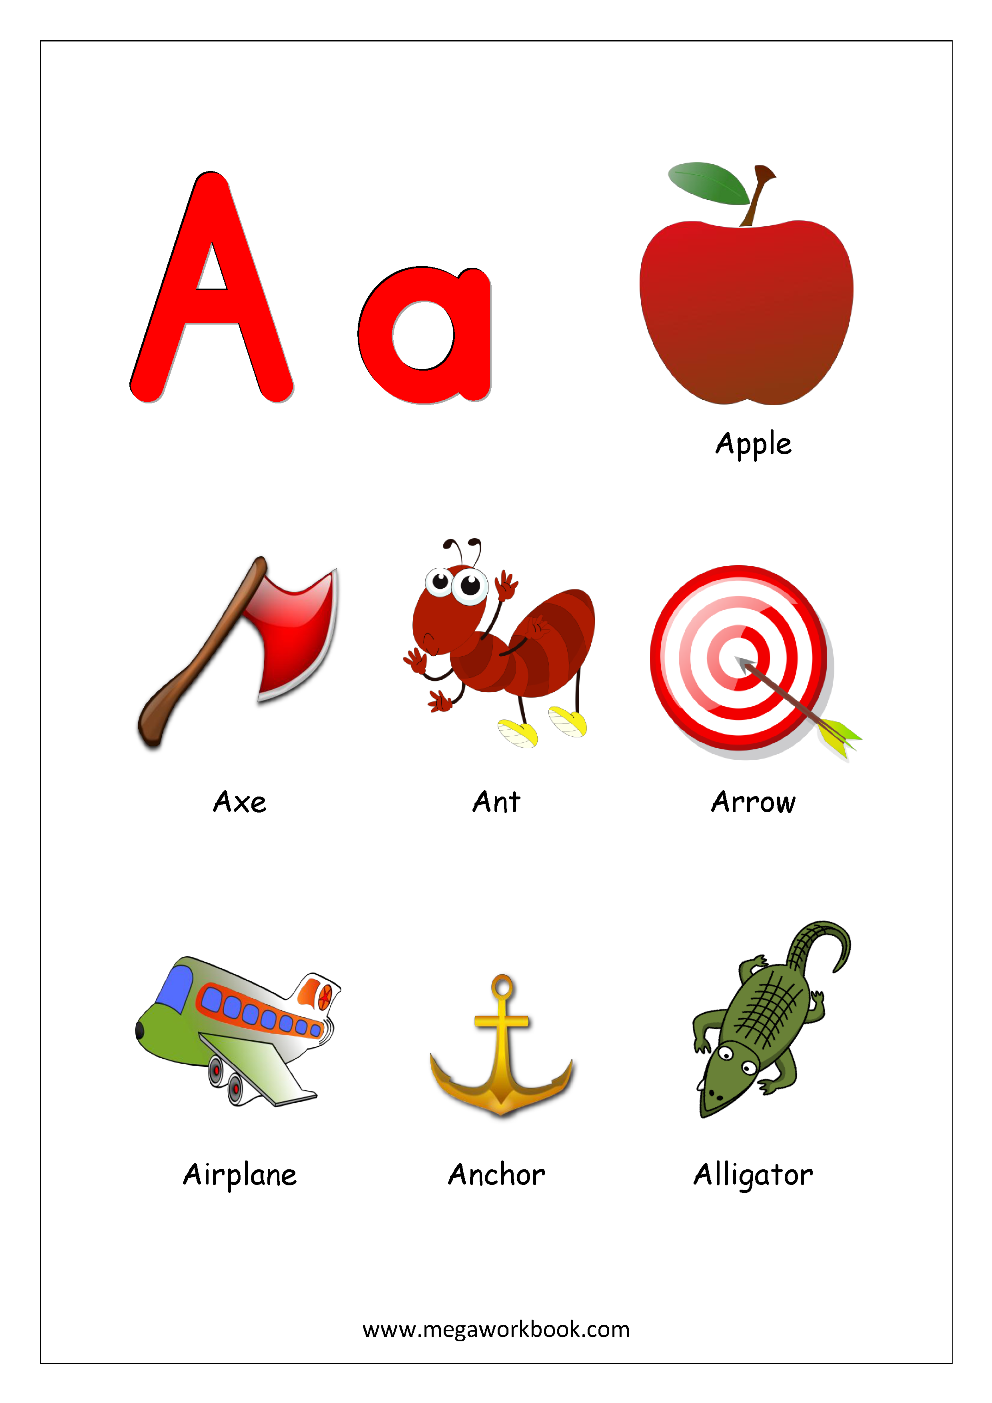 Letter Recognition (Alphabet Reading)